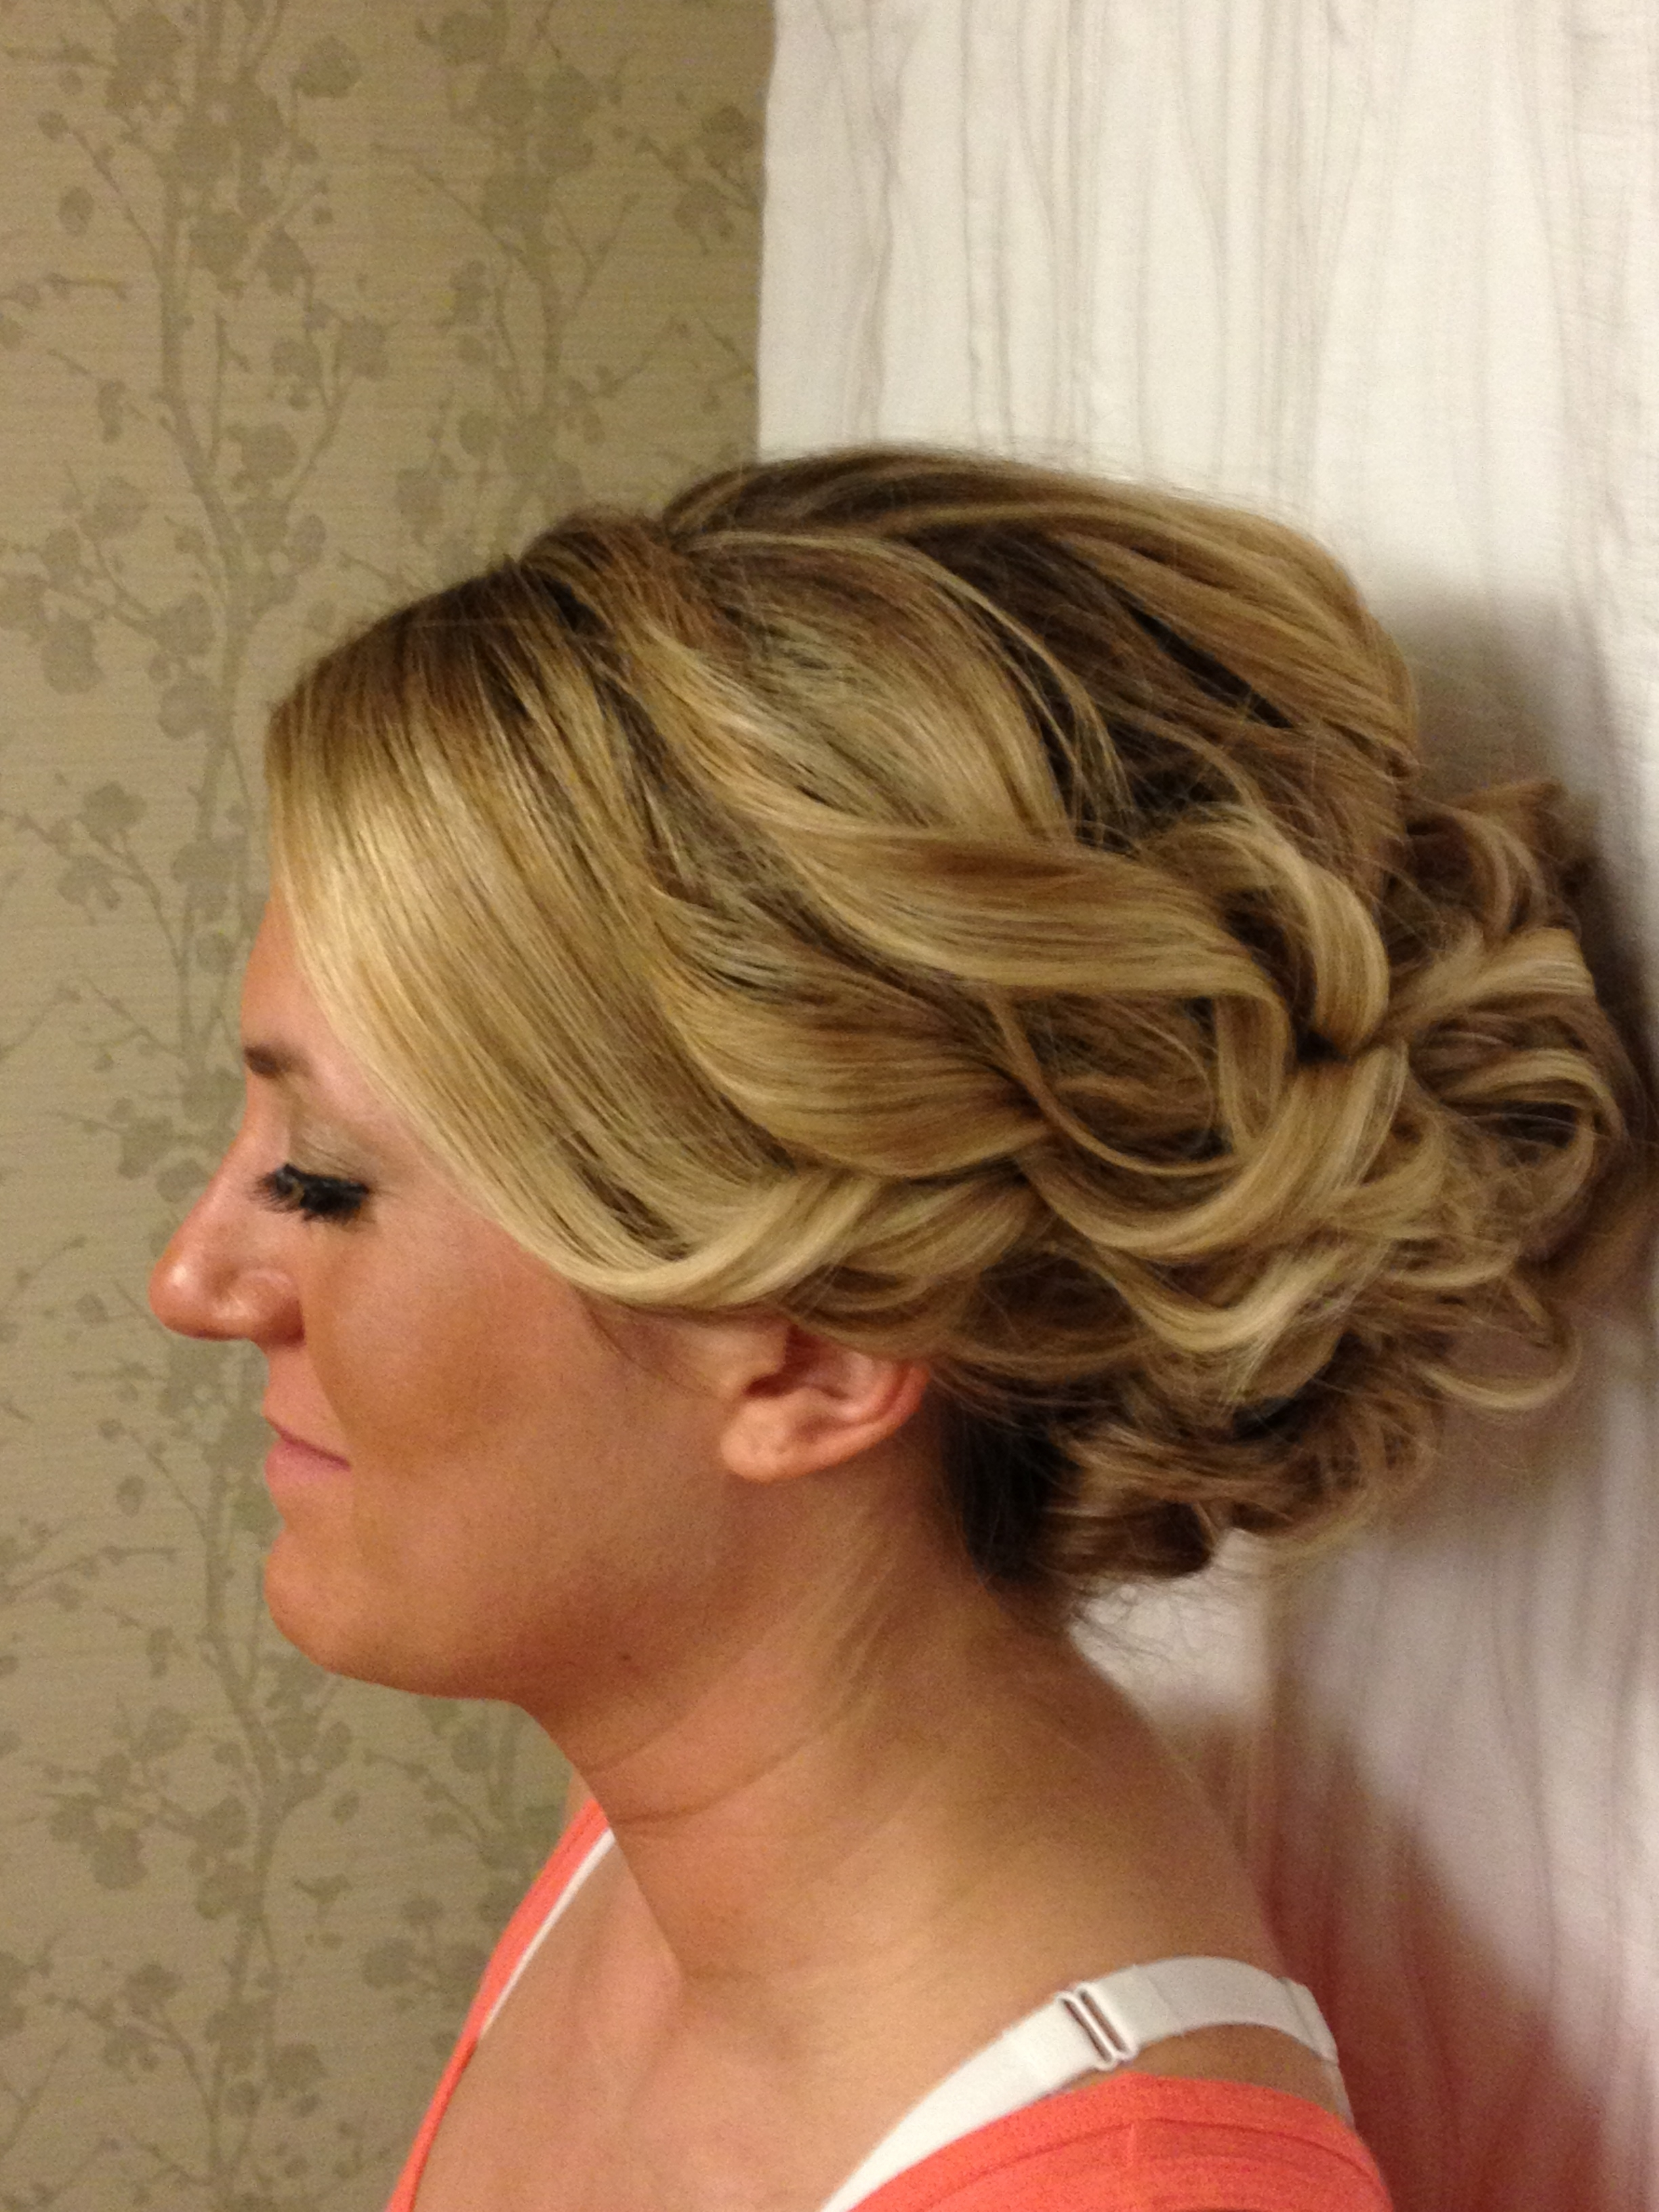 15 Inspirations Of Soft Updo Hairstyles For Medium Length Hair